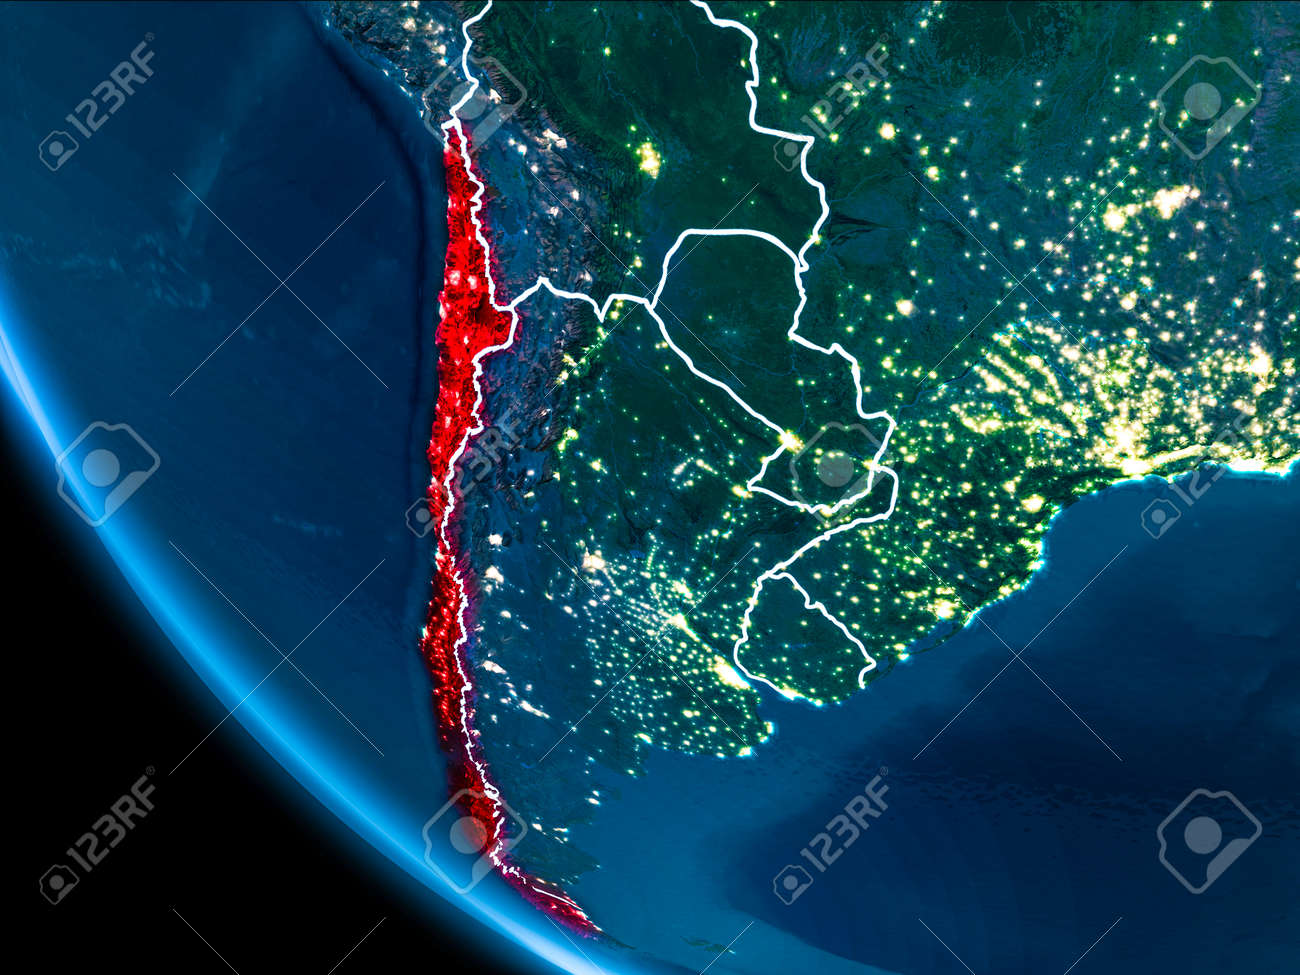 Map of chile in red as seen from space on planet earth at night illustration map of chile in red as seen from space on planet earth at night with white borderlines and city lights 3d illustration gumiabroncs Image collections